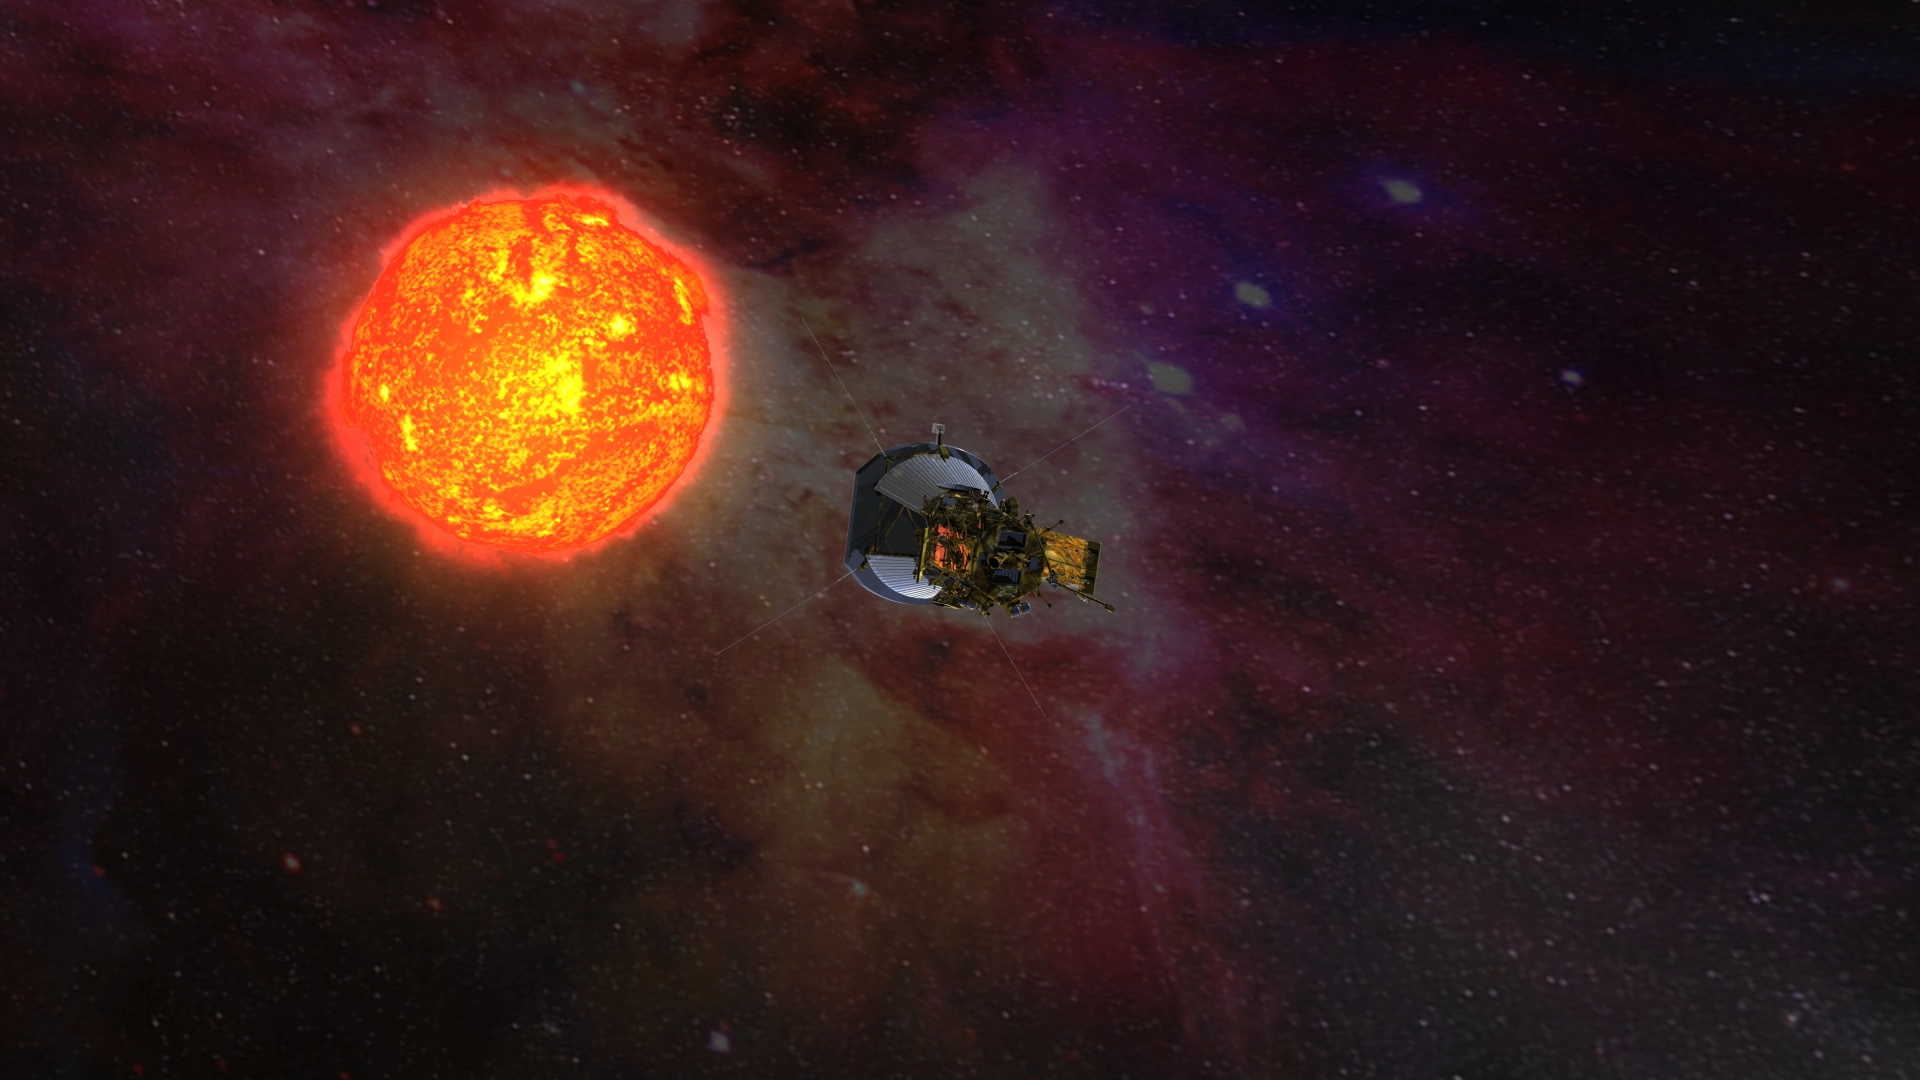 Future NASA mission to sun 'a life's dream' for some